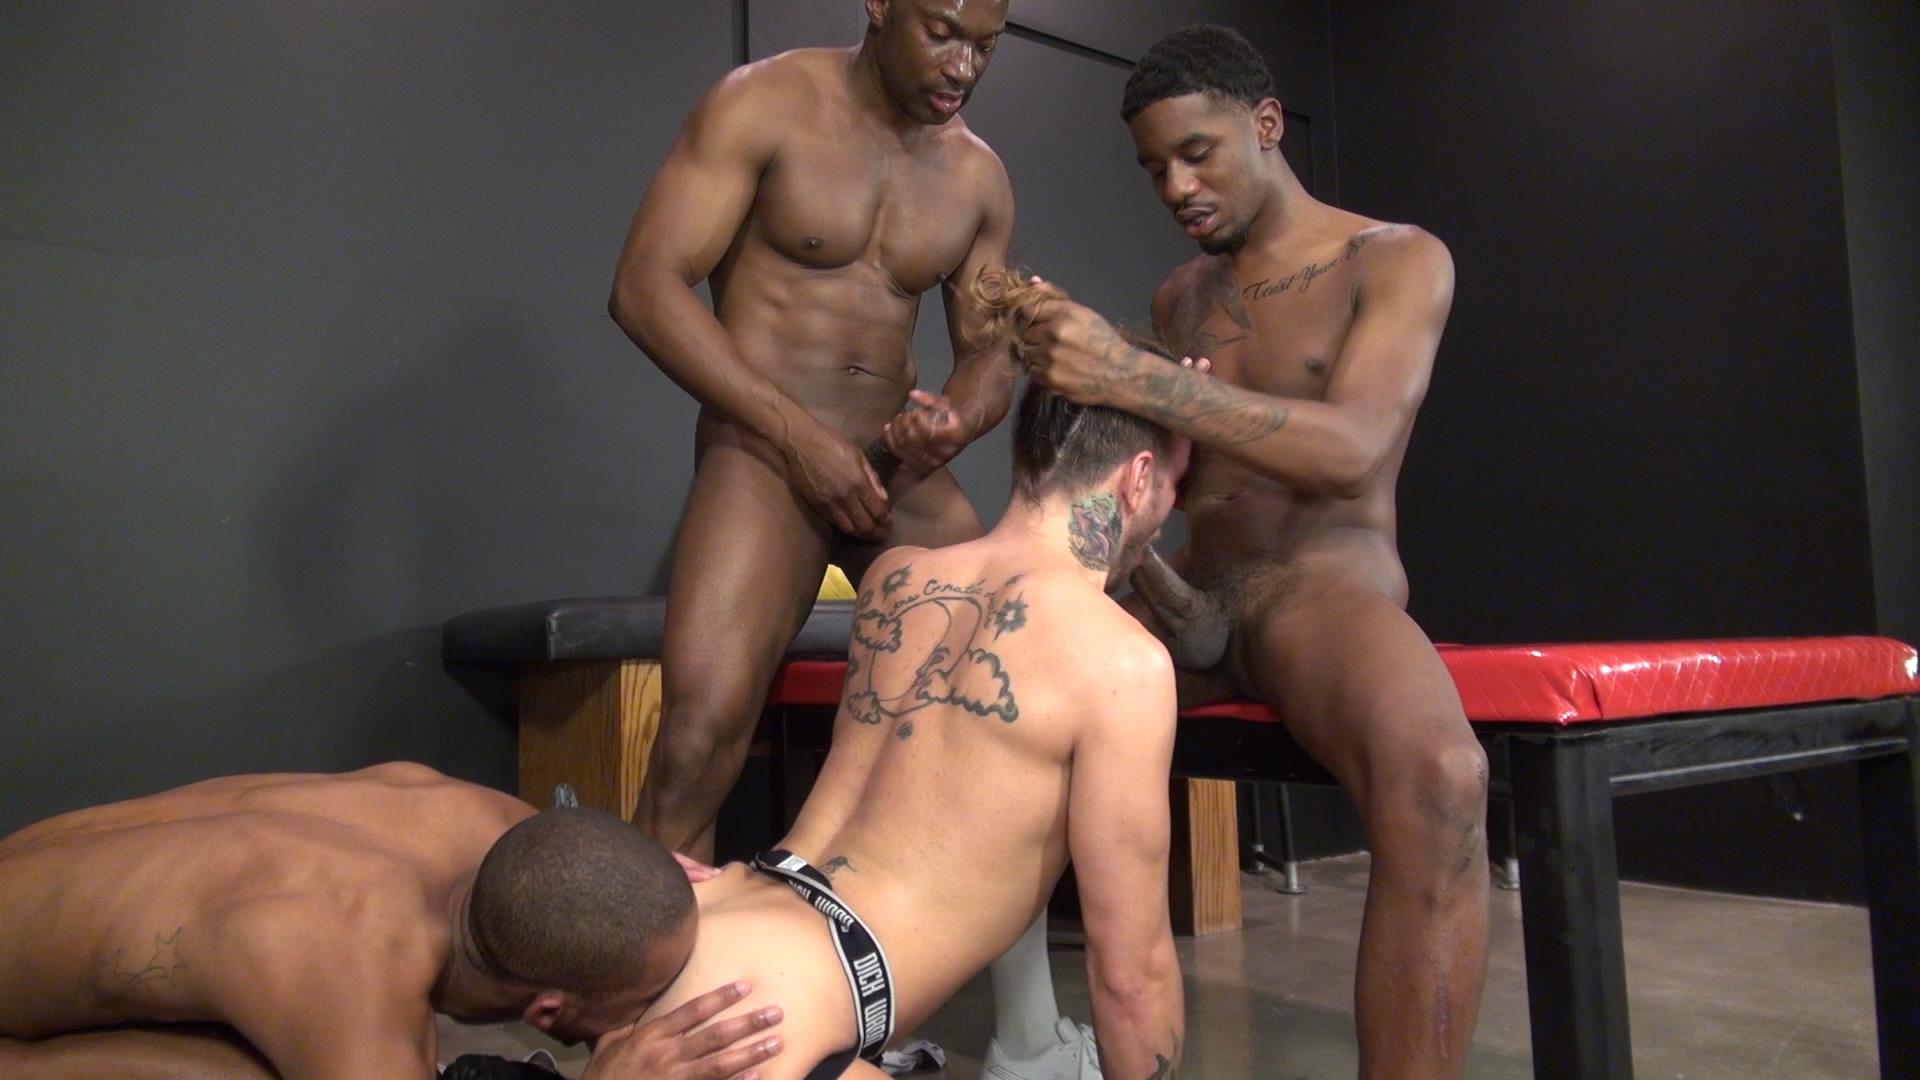 gay porn black on white